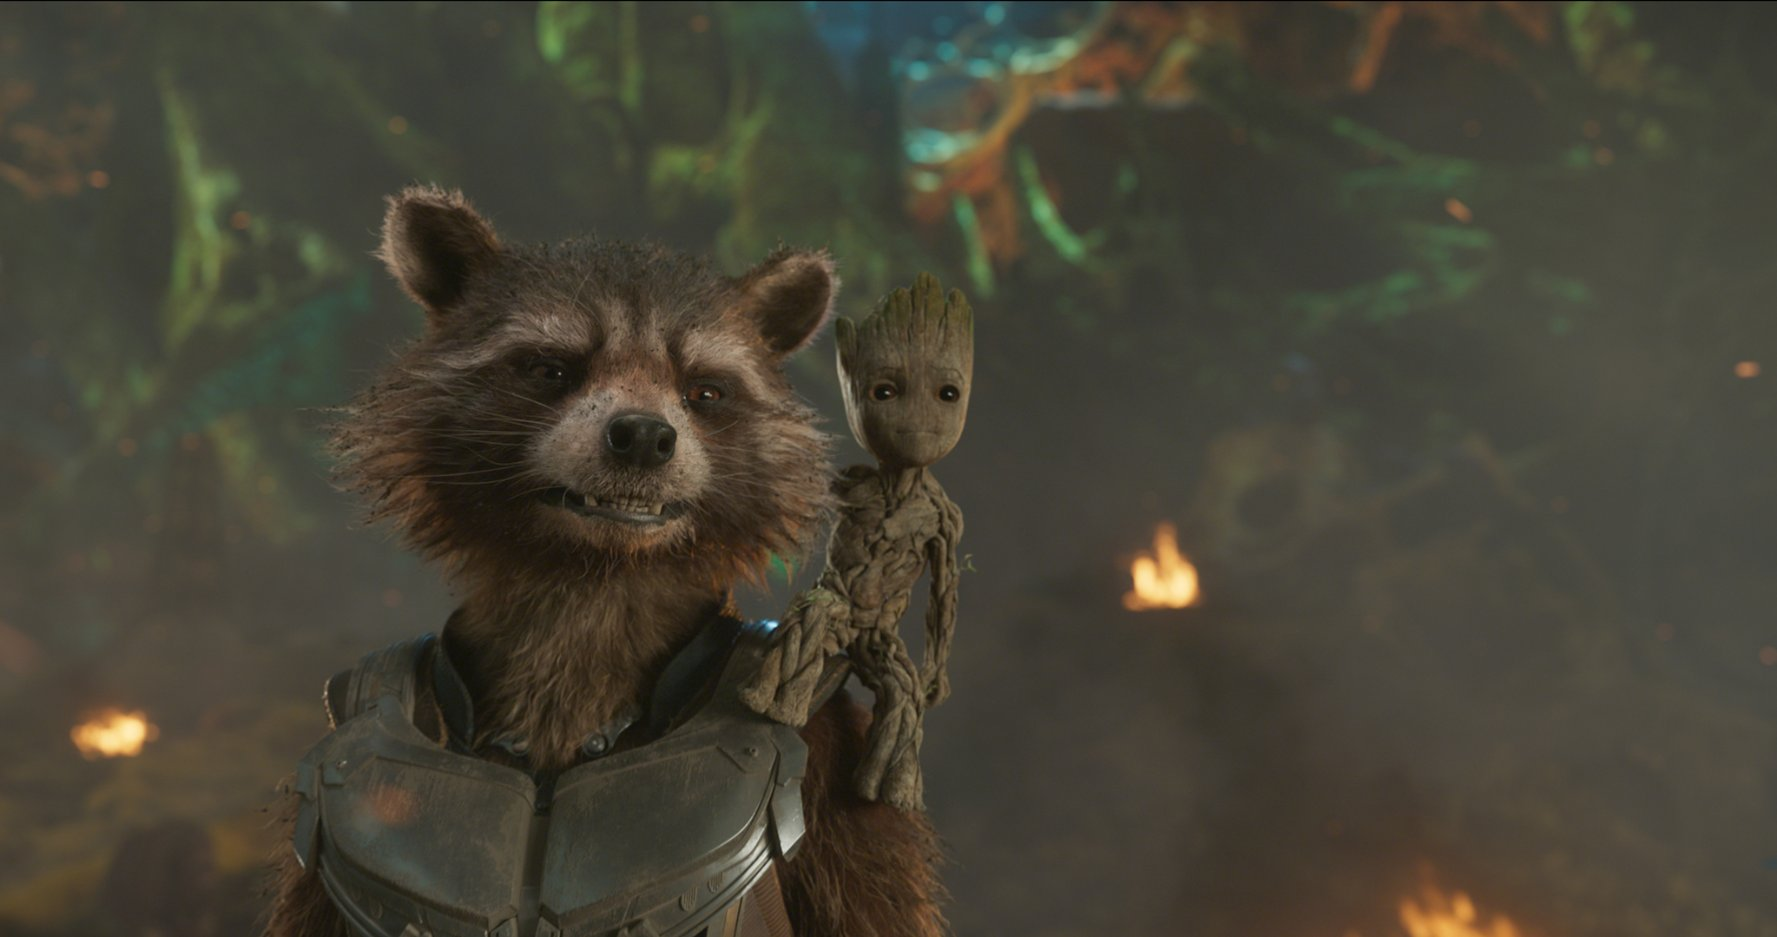 https://cinemaplanet.pt/wp-content/uploads/2017/02/guardians-of-the-galaxy.jpg